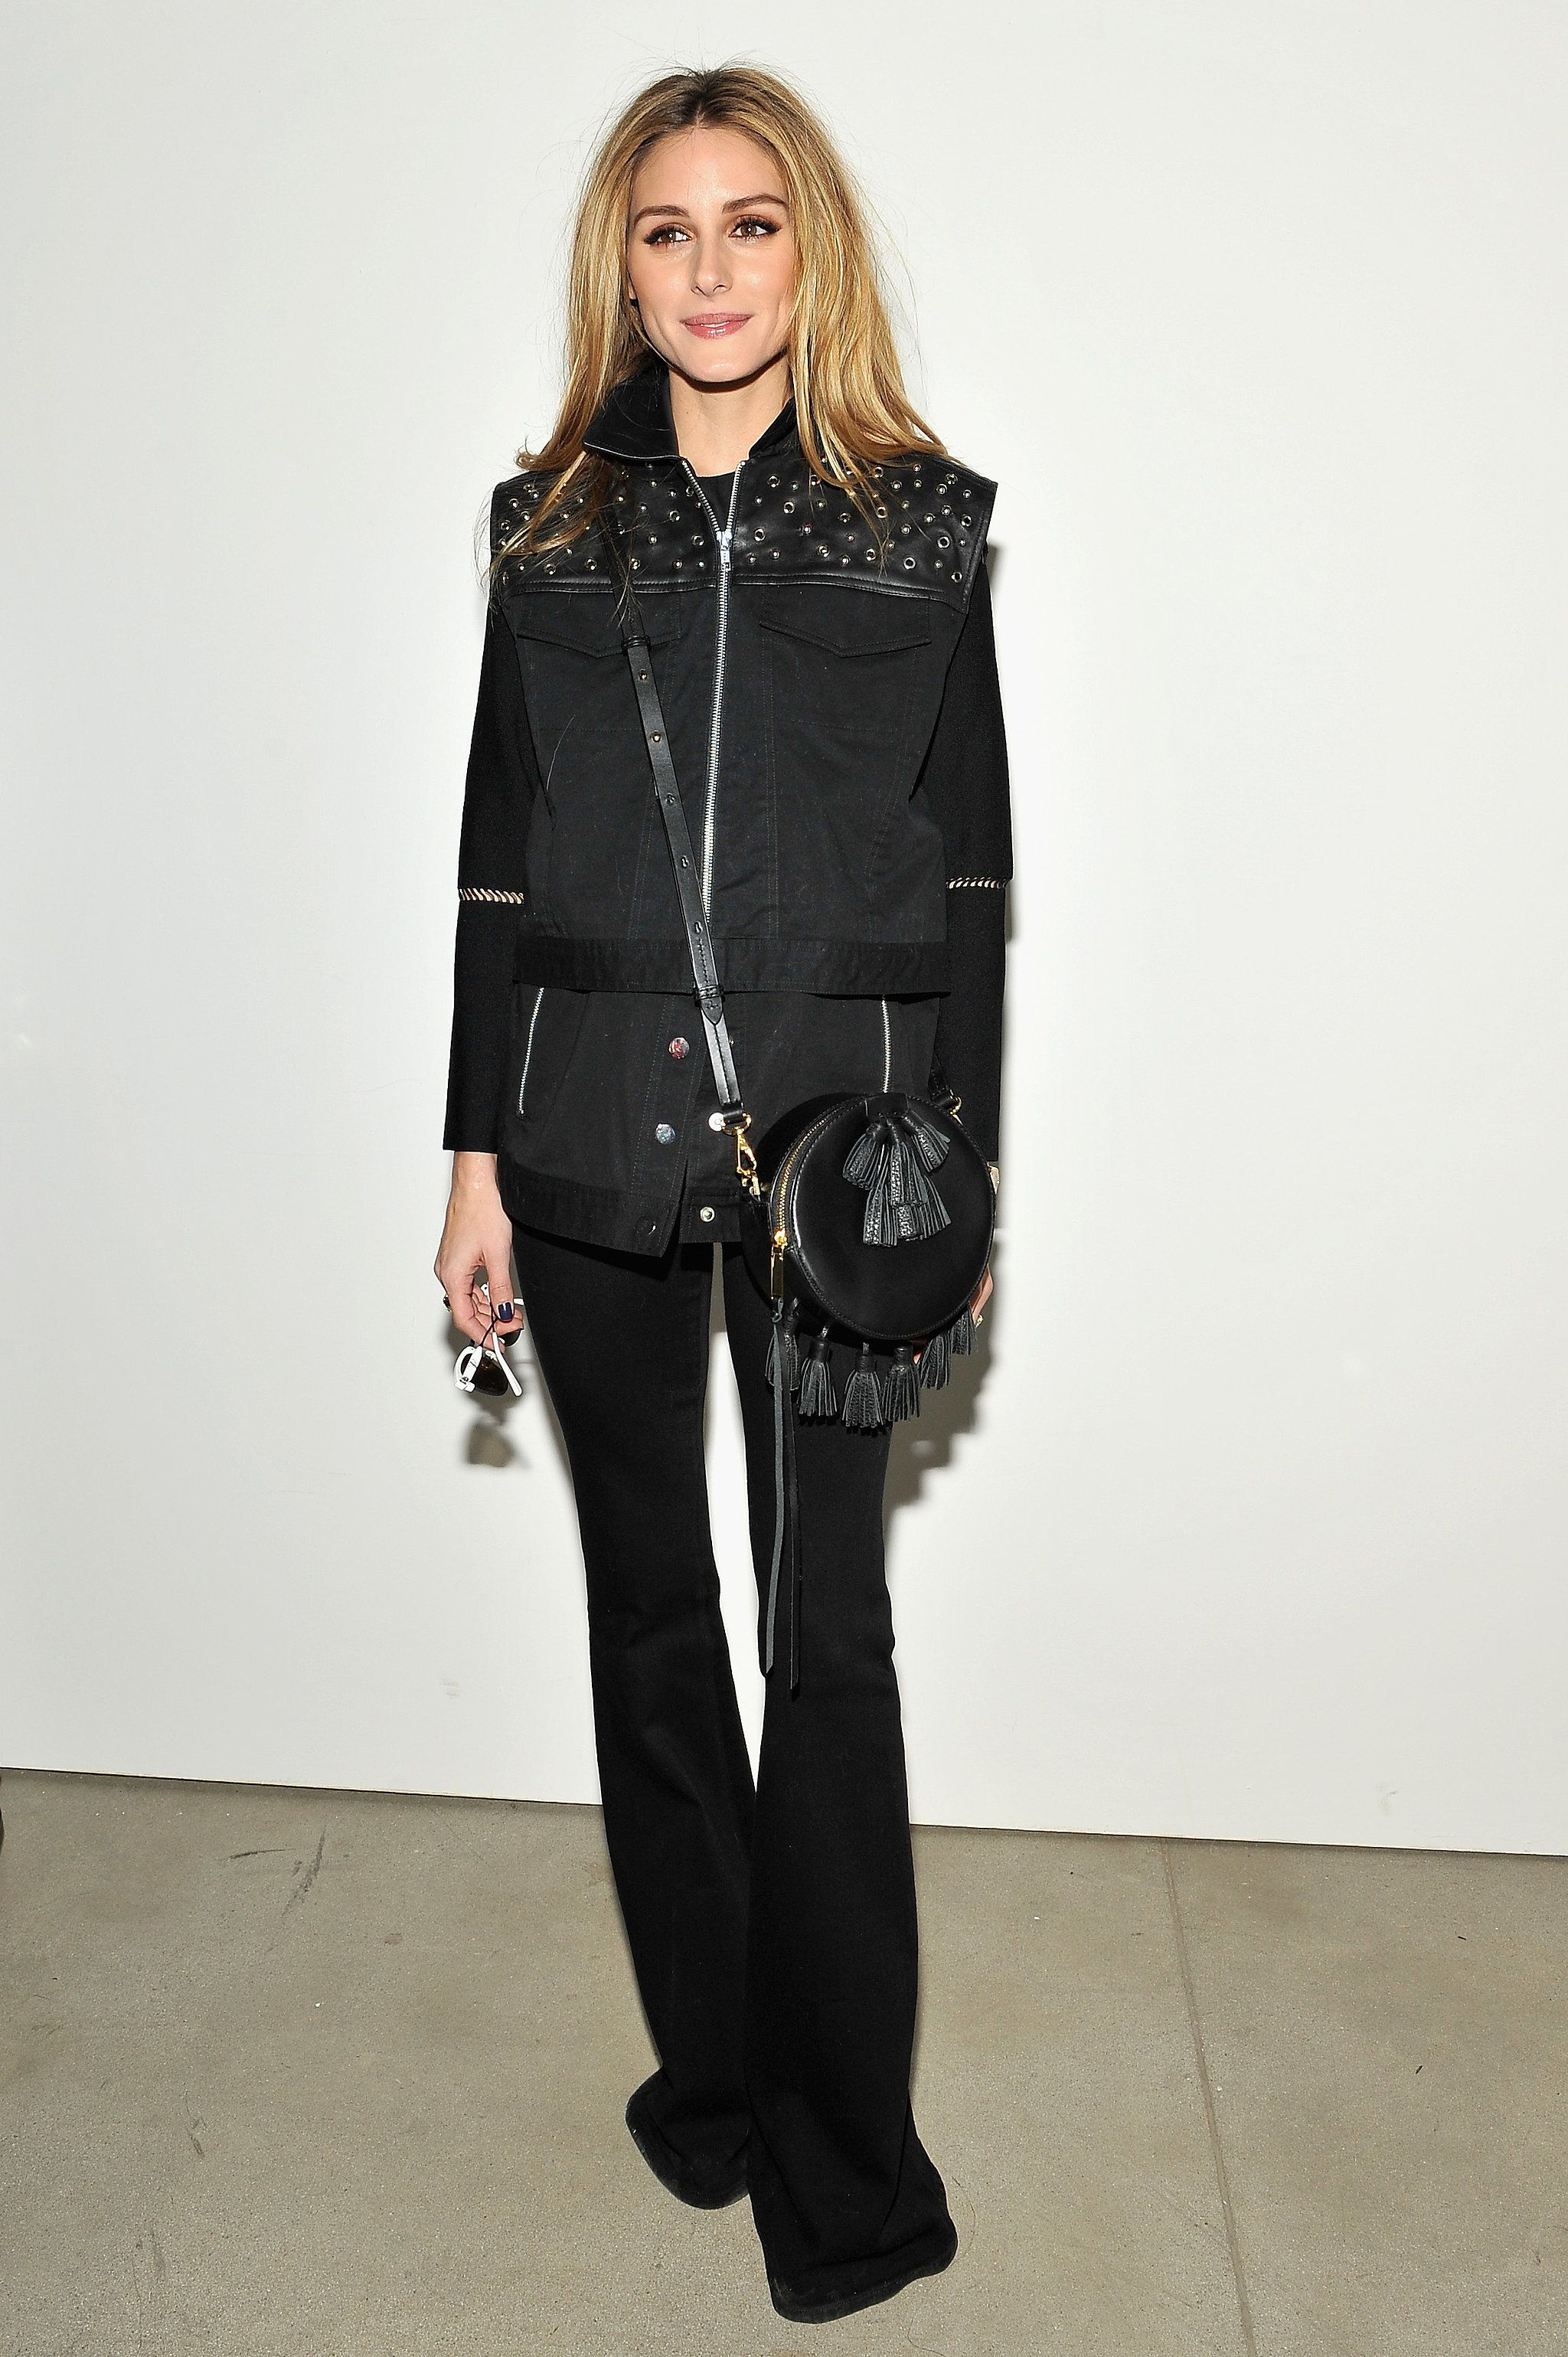 You'll Want to See Everything Olivia Palermo Is Wearing to Fashion Week